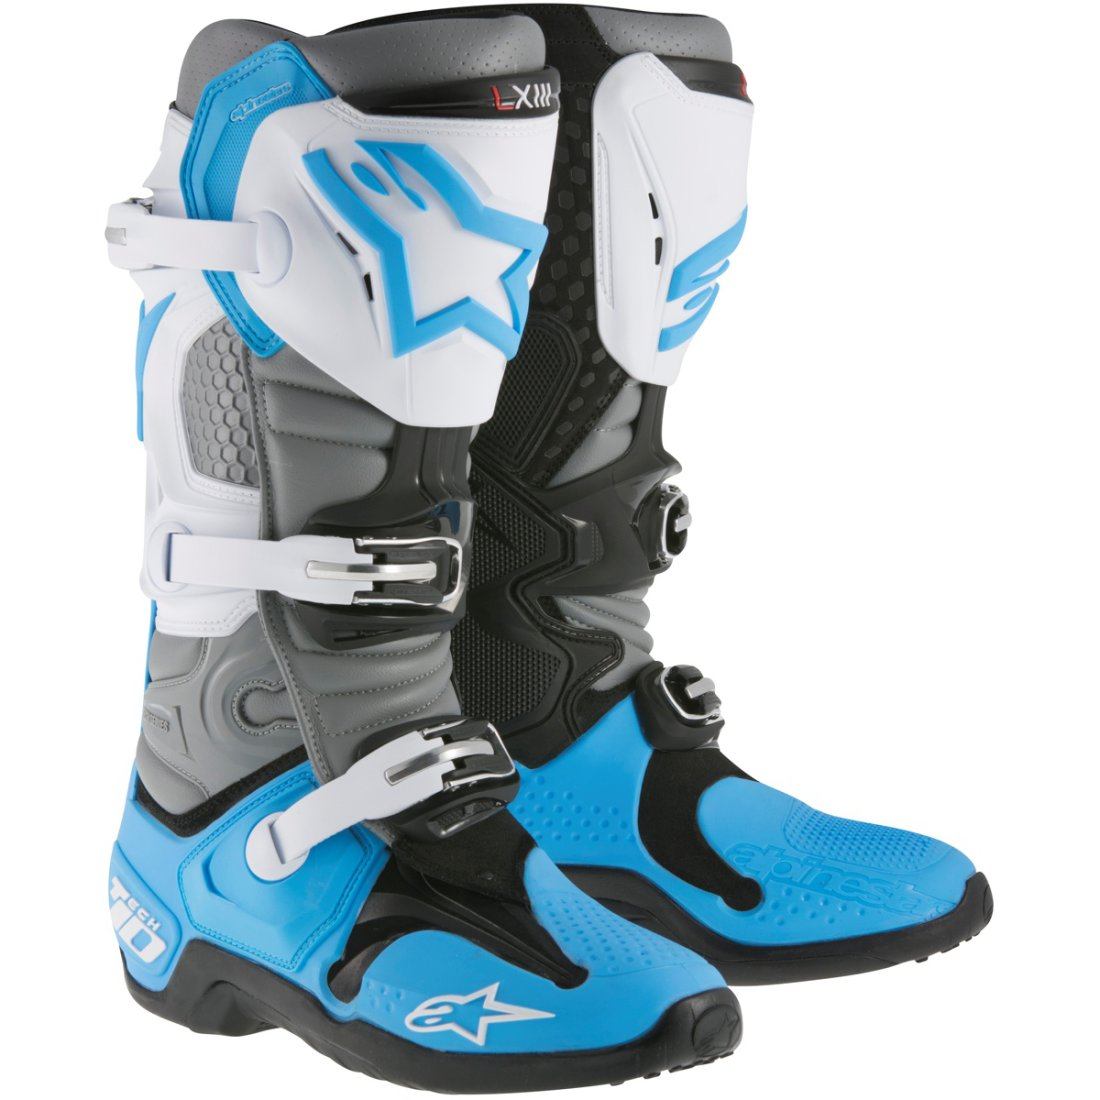 bottes alpinestars tech 10 2018 cyan white gray motocard. Black Bedroom Furniture Sets. Home Design Ideas